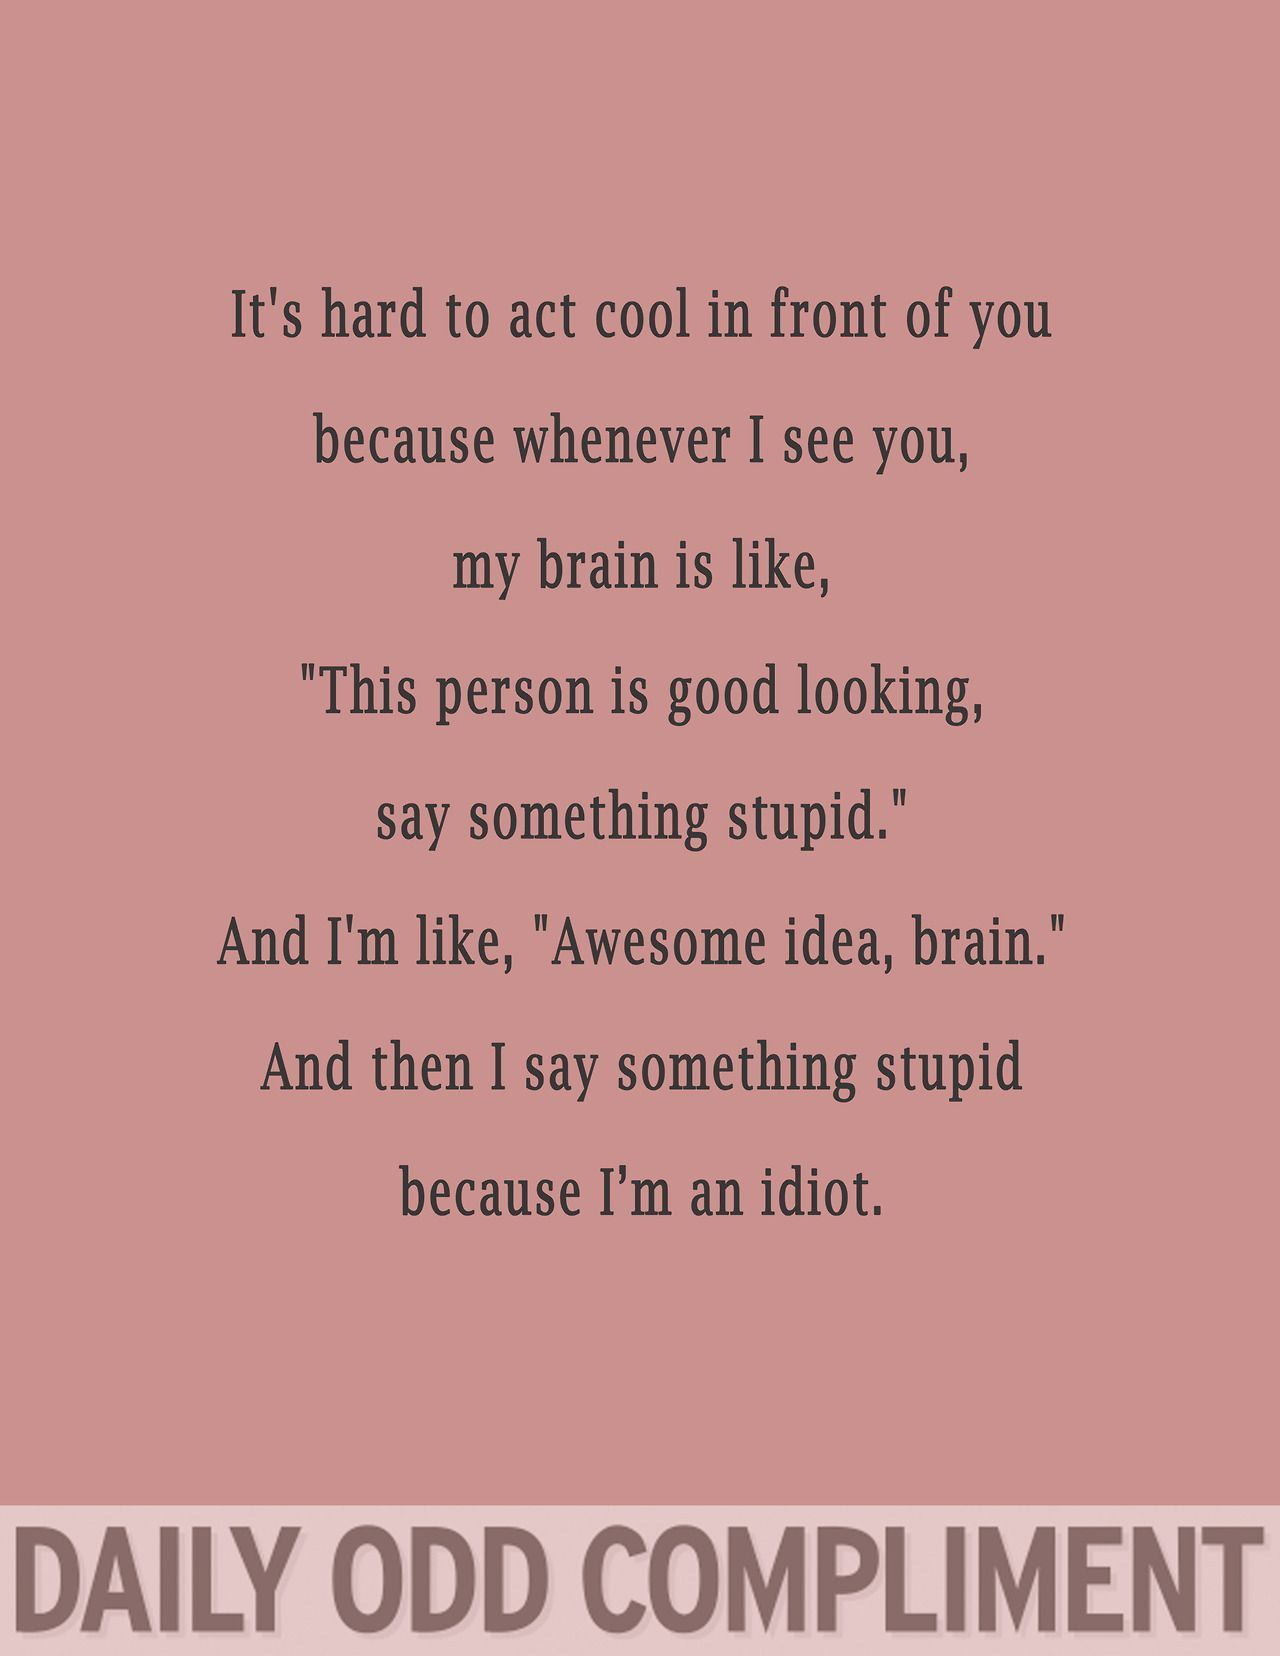 Haven T Seen This Here In A While Imgur Funny Compliments Daily Odd Compliment Daily Odd